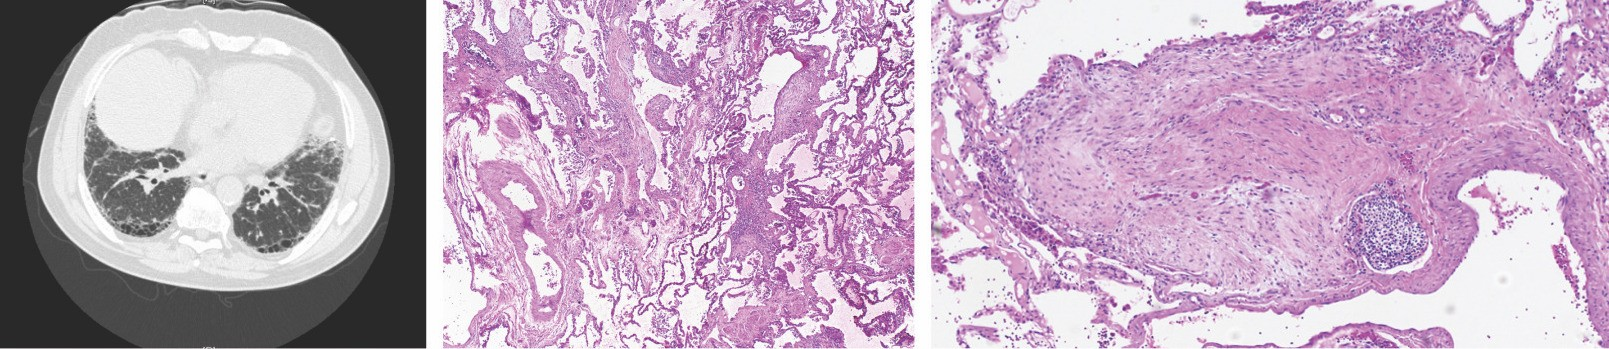 From left, a chest CT scan of a patient with idiopathic pulmonary fibrosis and lung biopsies displaying the typical disease pattern and scarring. Images by Cedars-Sinai.